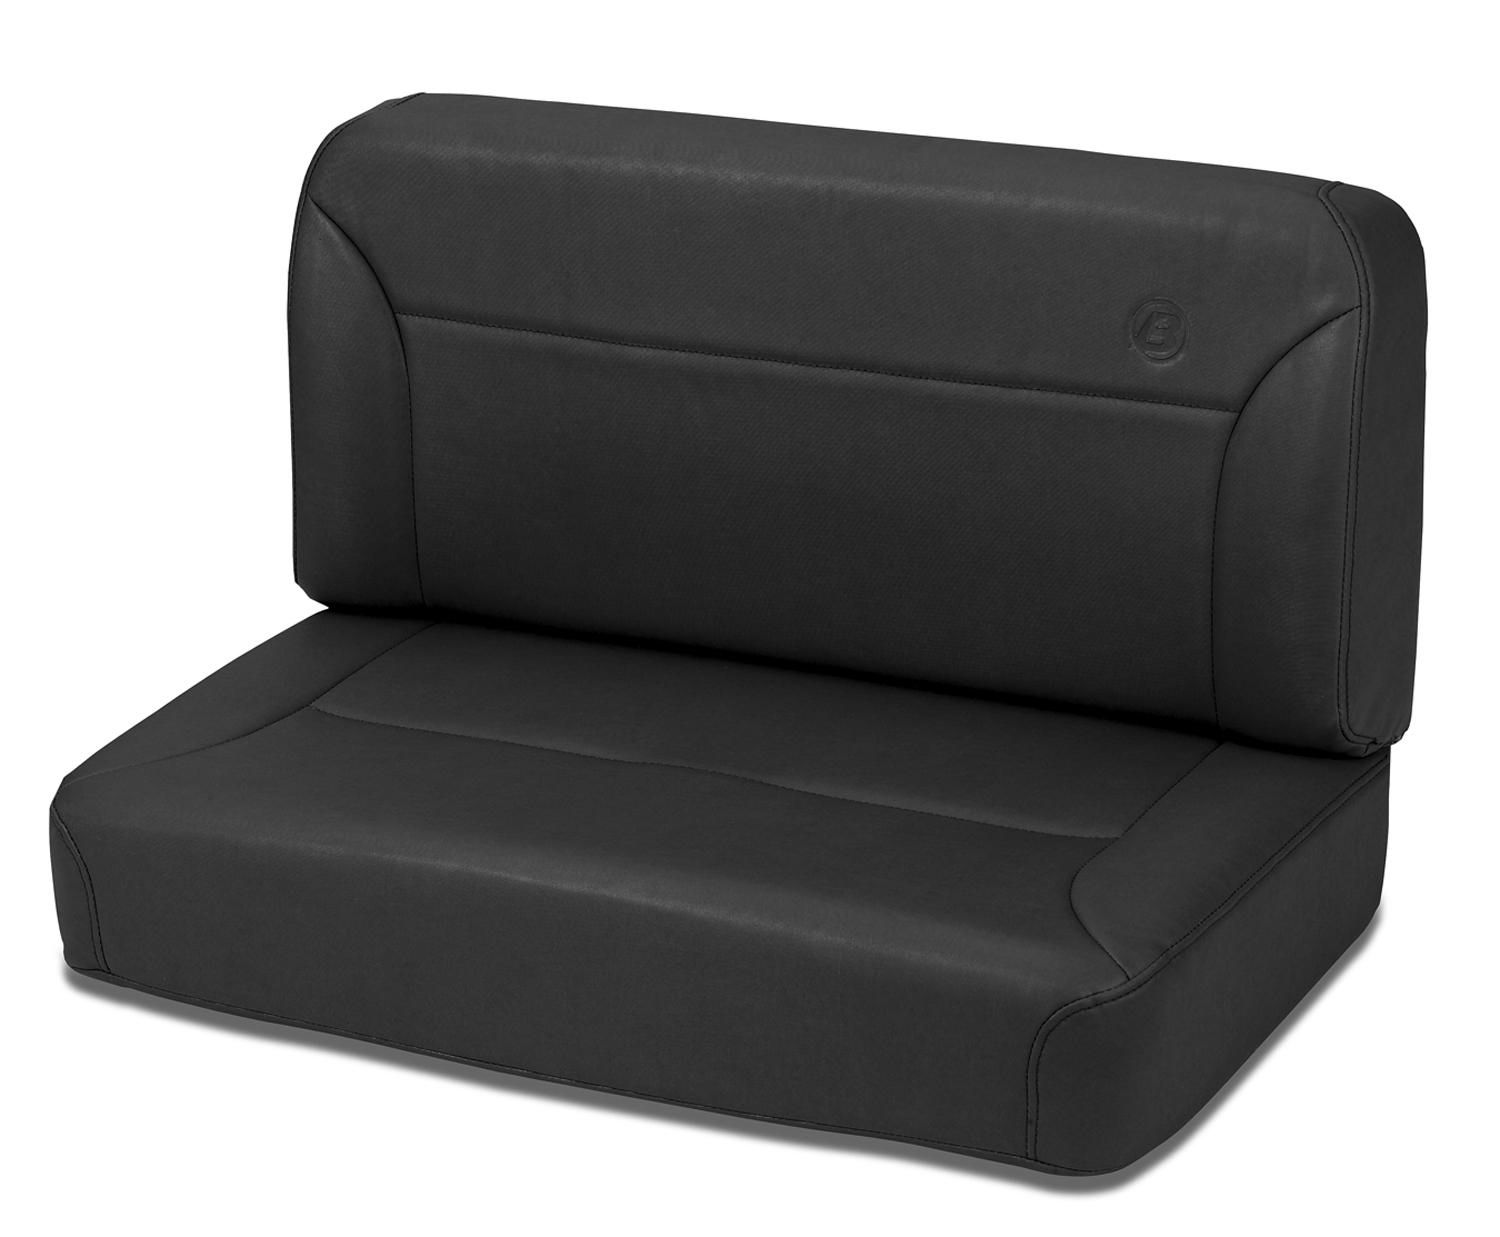 Bestop 39437-01 All Vinyl Black Crush Trailmax II Fixed-Back Rear Bench Seat Jeep CJ-5 | CJ-7 | Wrangler YJ 1955-1995